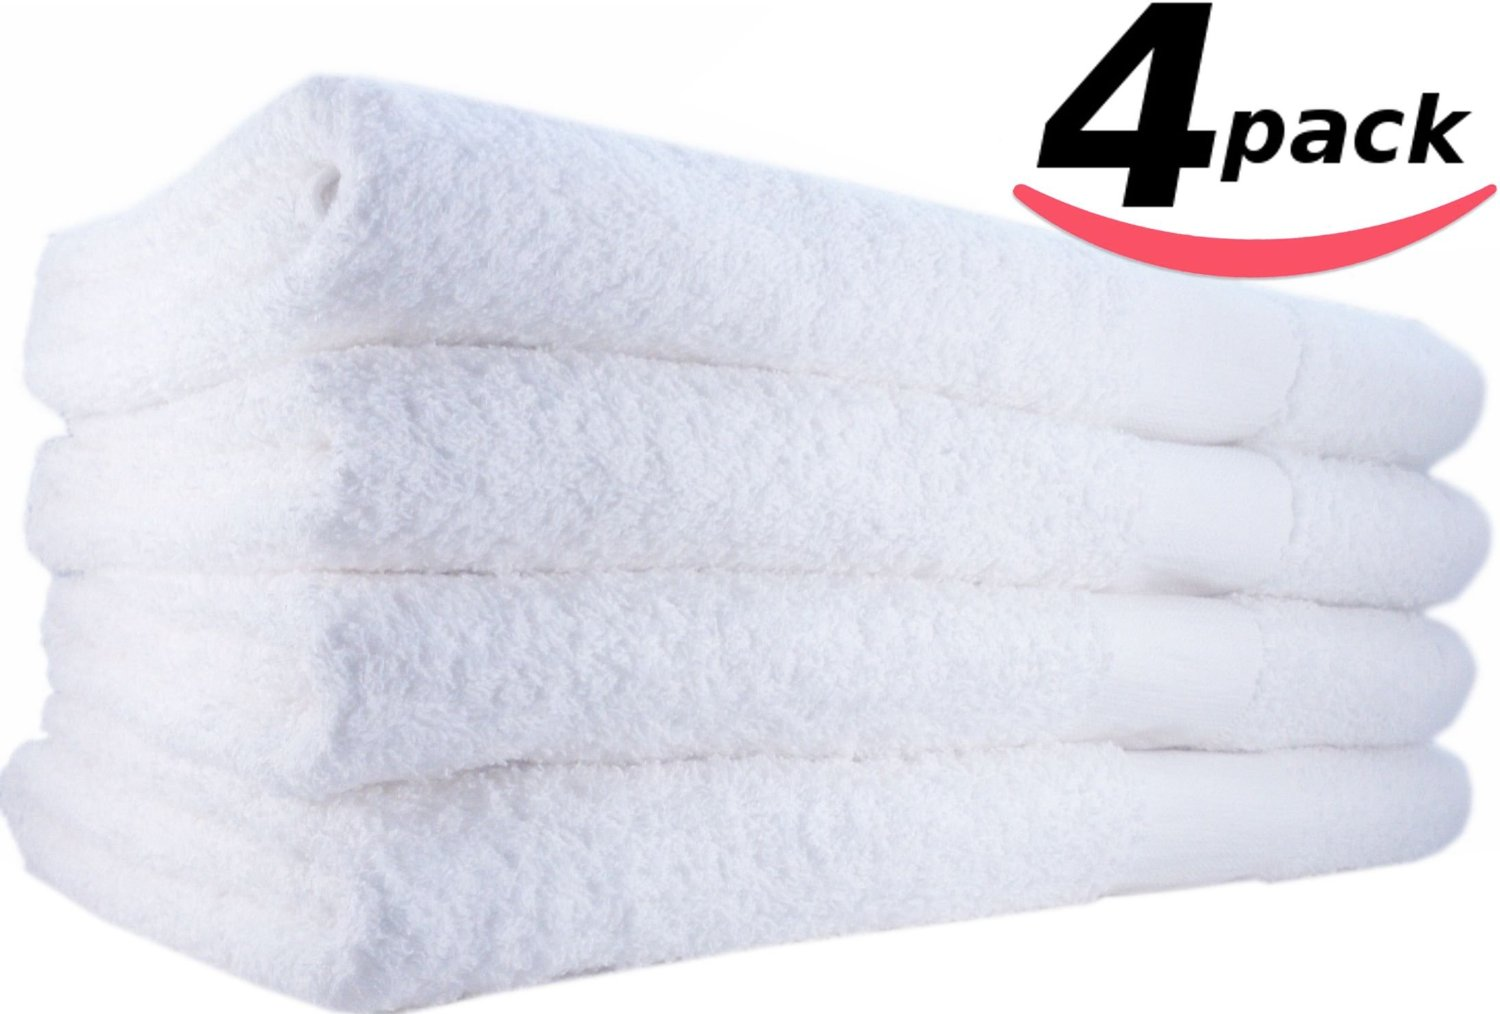 Hotel-Spa-Pool-Gym Cotton Hair & Bath Towel – 4 Pack, White, Super Soft, Easy Care, Ringspun Cotton for Maximum Softness and Absorbency (24″x 48″) by Utopia Towel review